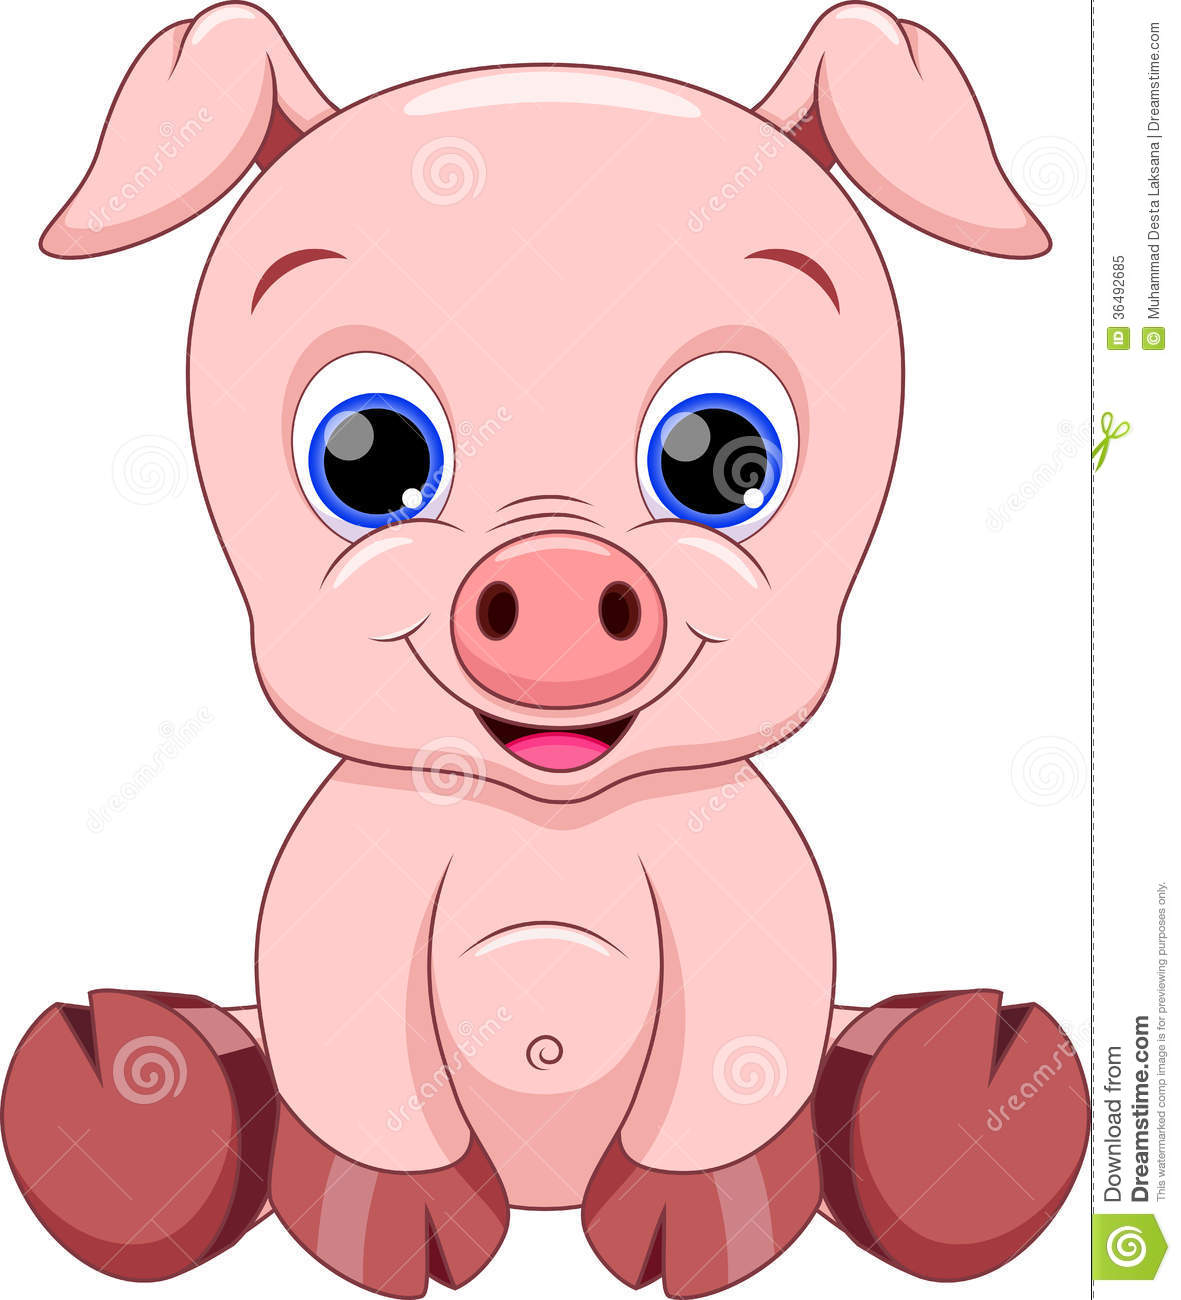 Cute Cartoon Pigs Submited Images